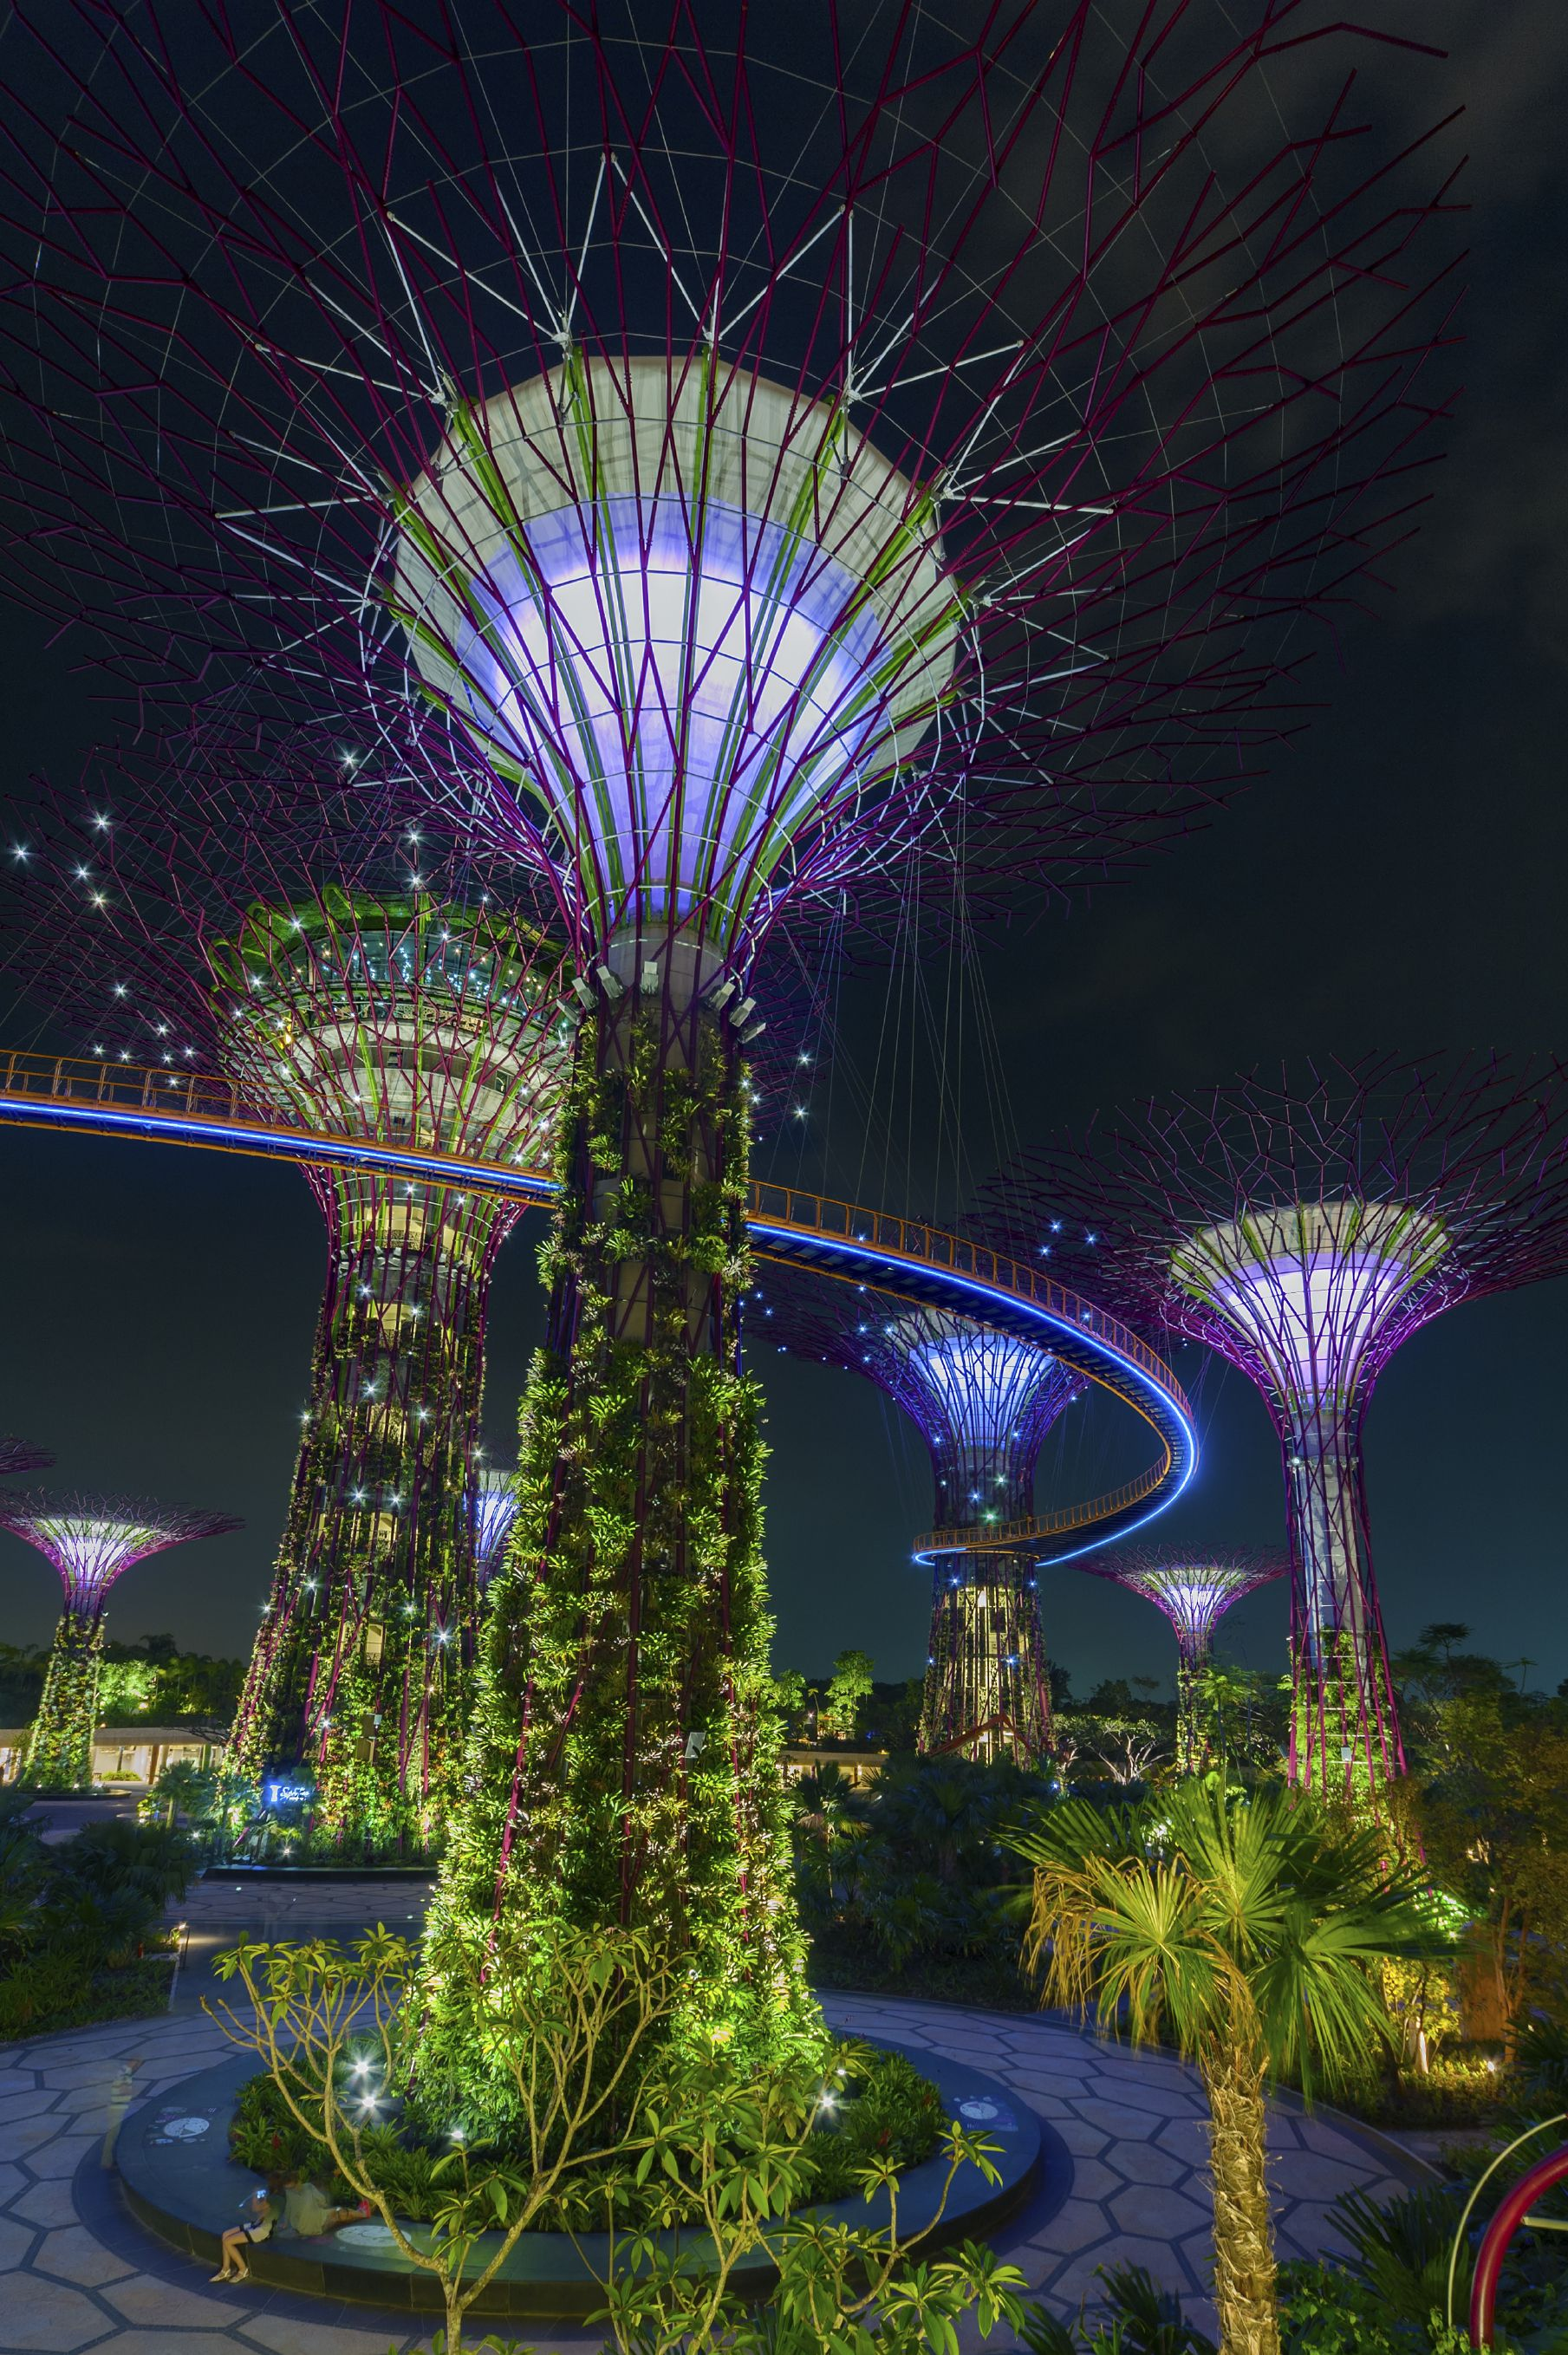 Gardens by the Bay in Singapore. I definitely want to